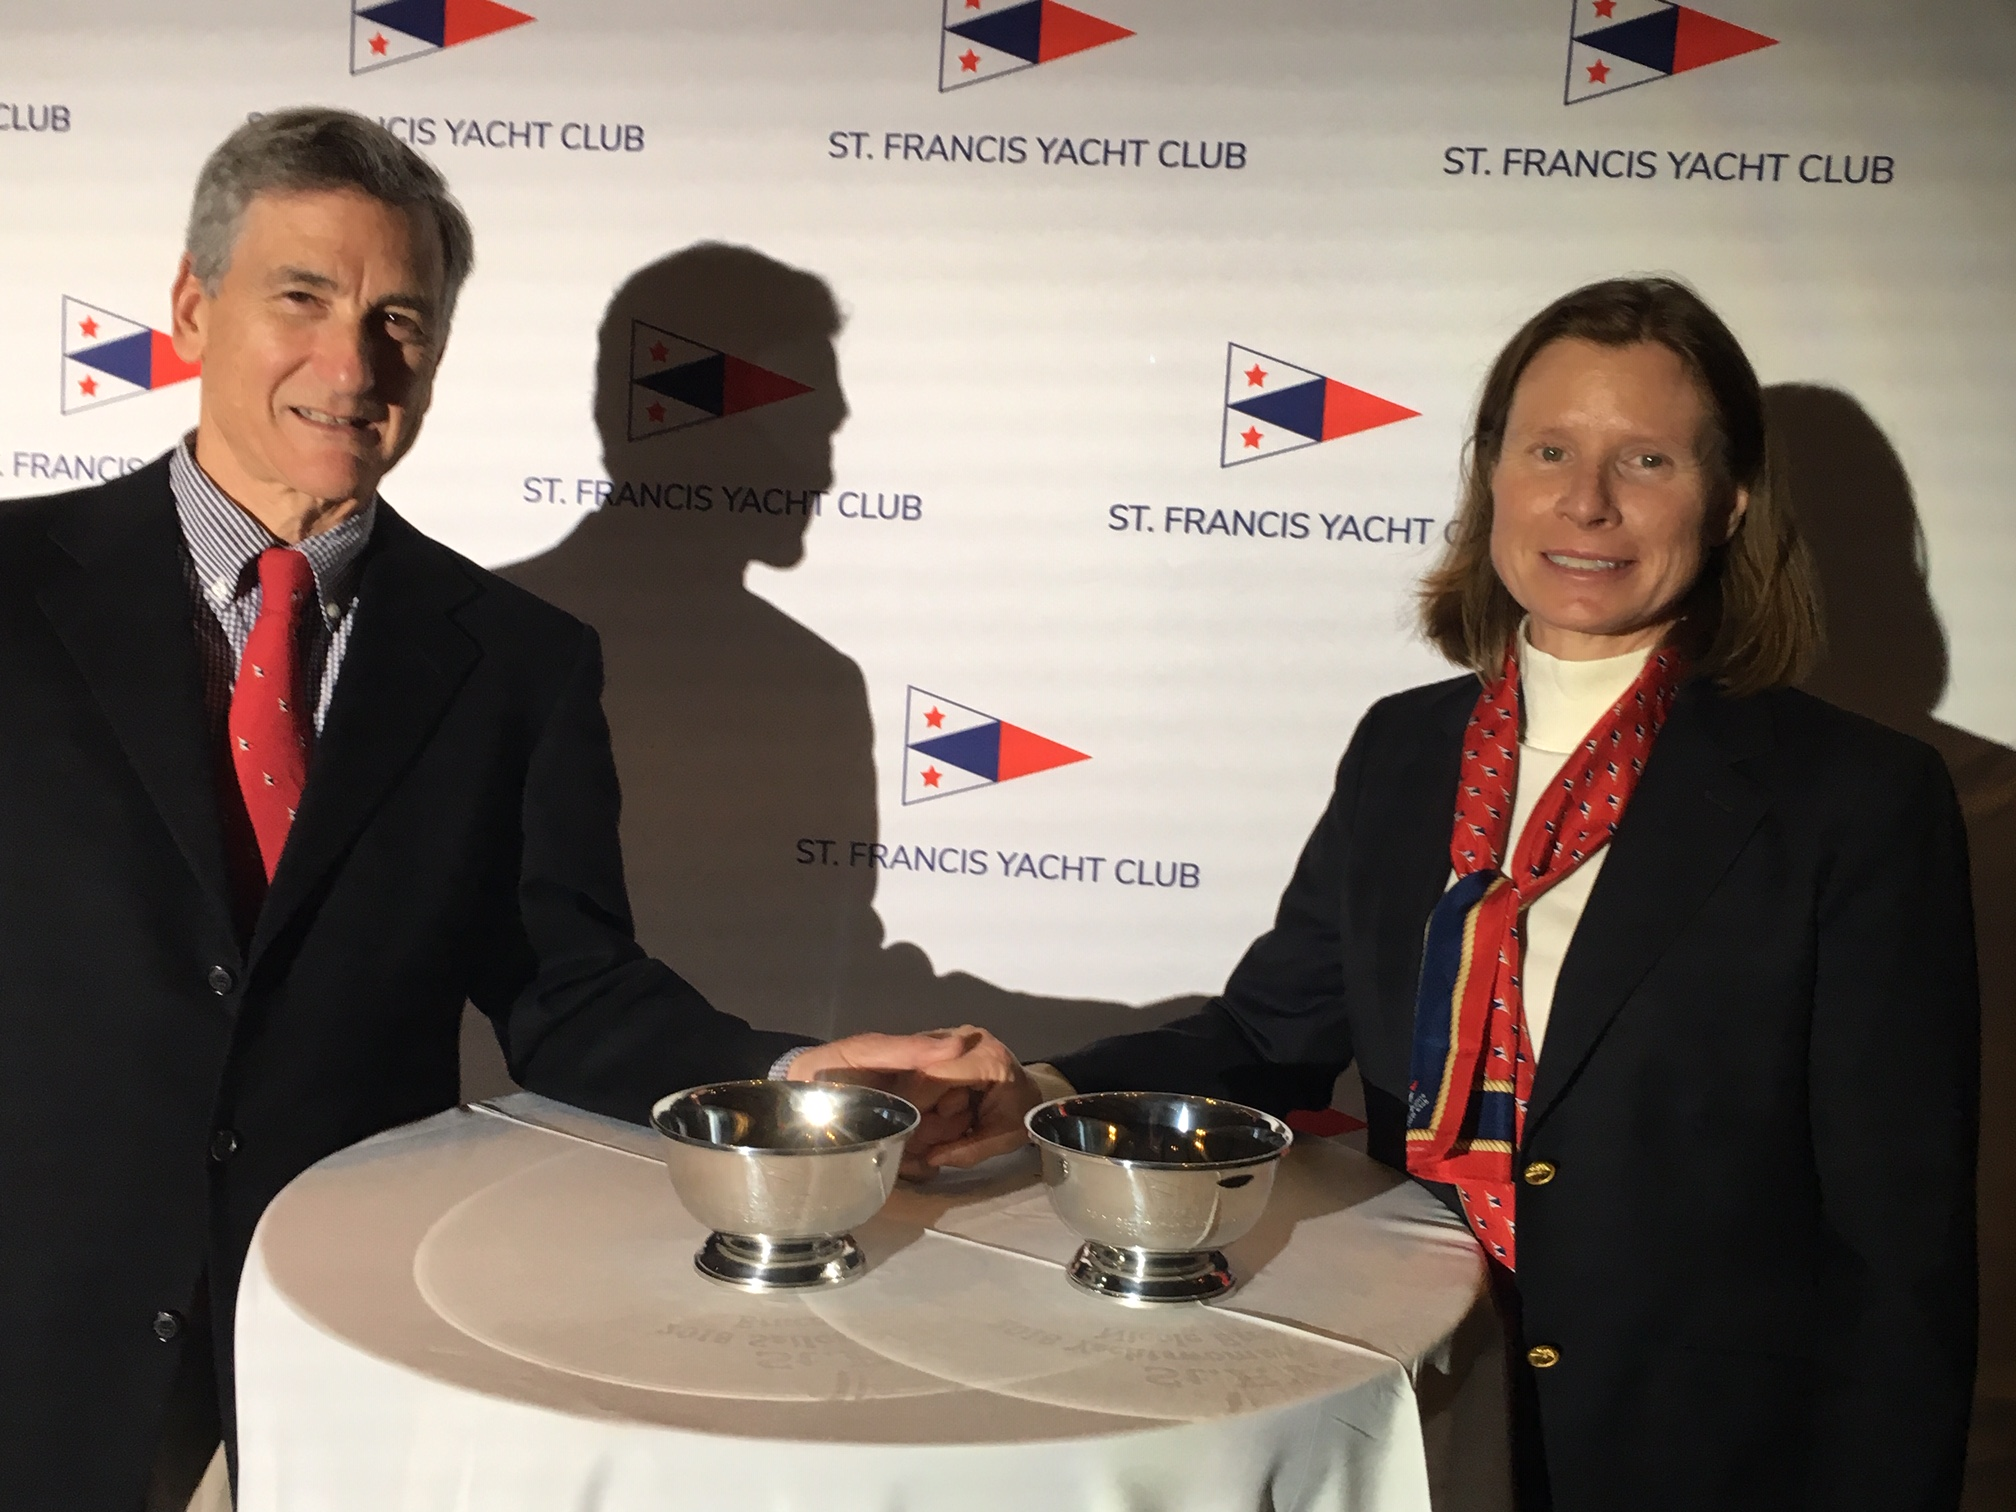 St Francis YC Yachtsman & Yachtswoman Sailors of the Year- Stone and Breault